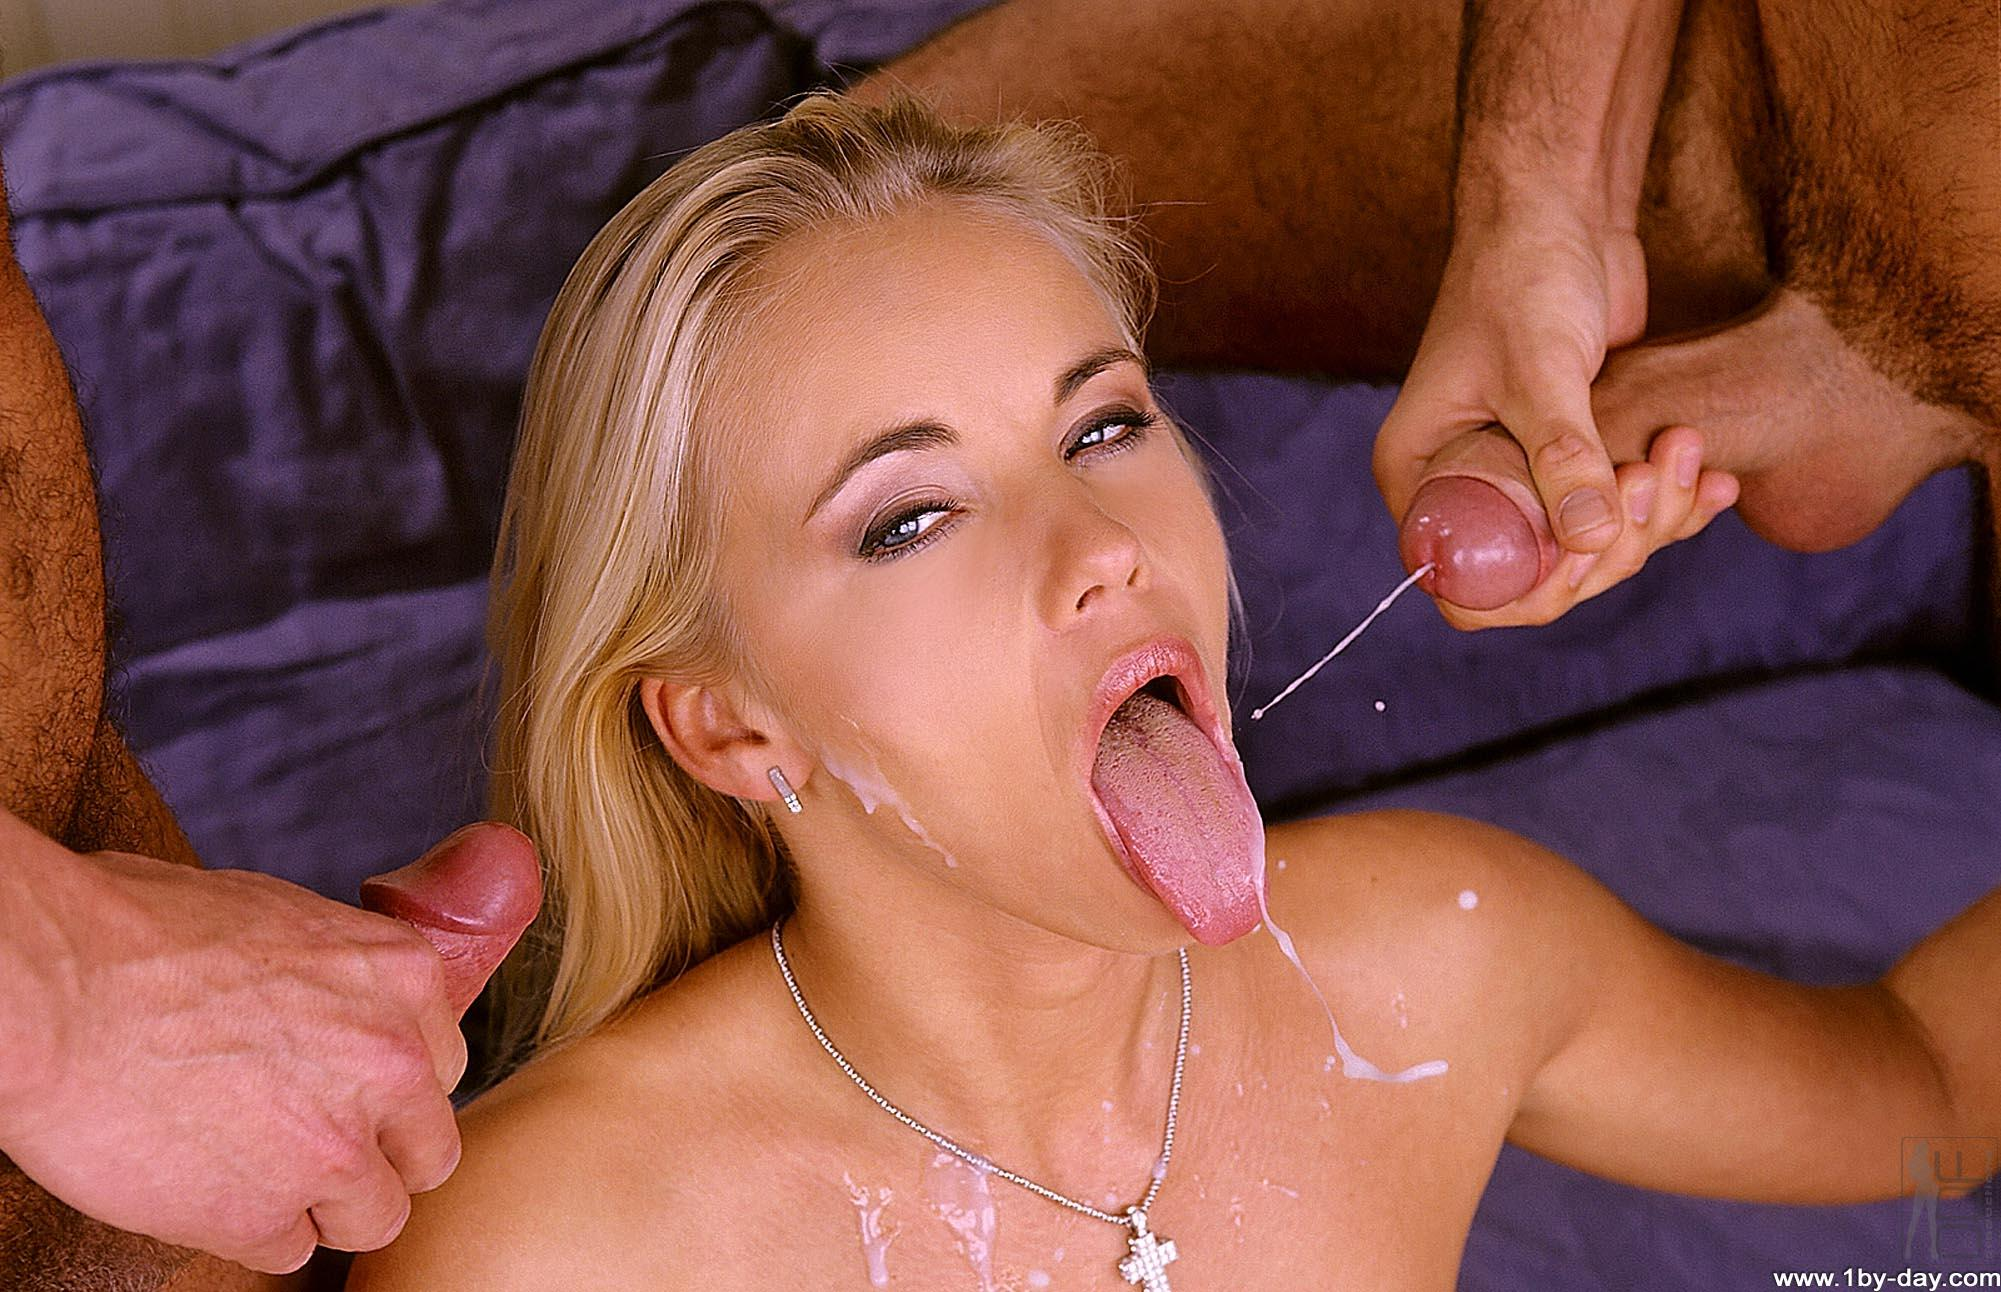 Shot facial pictures cumshot